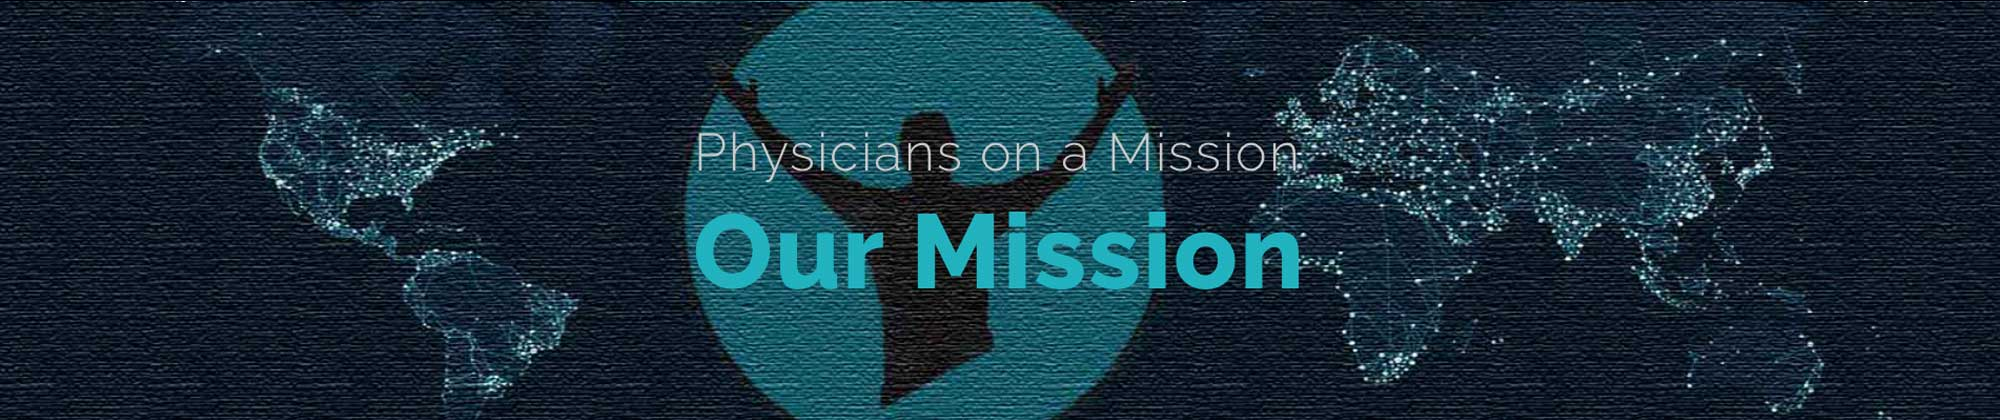 our-mission-header